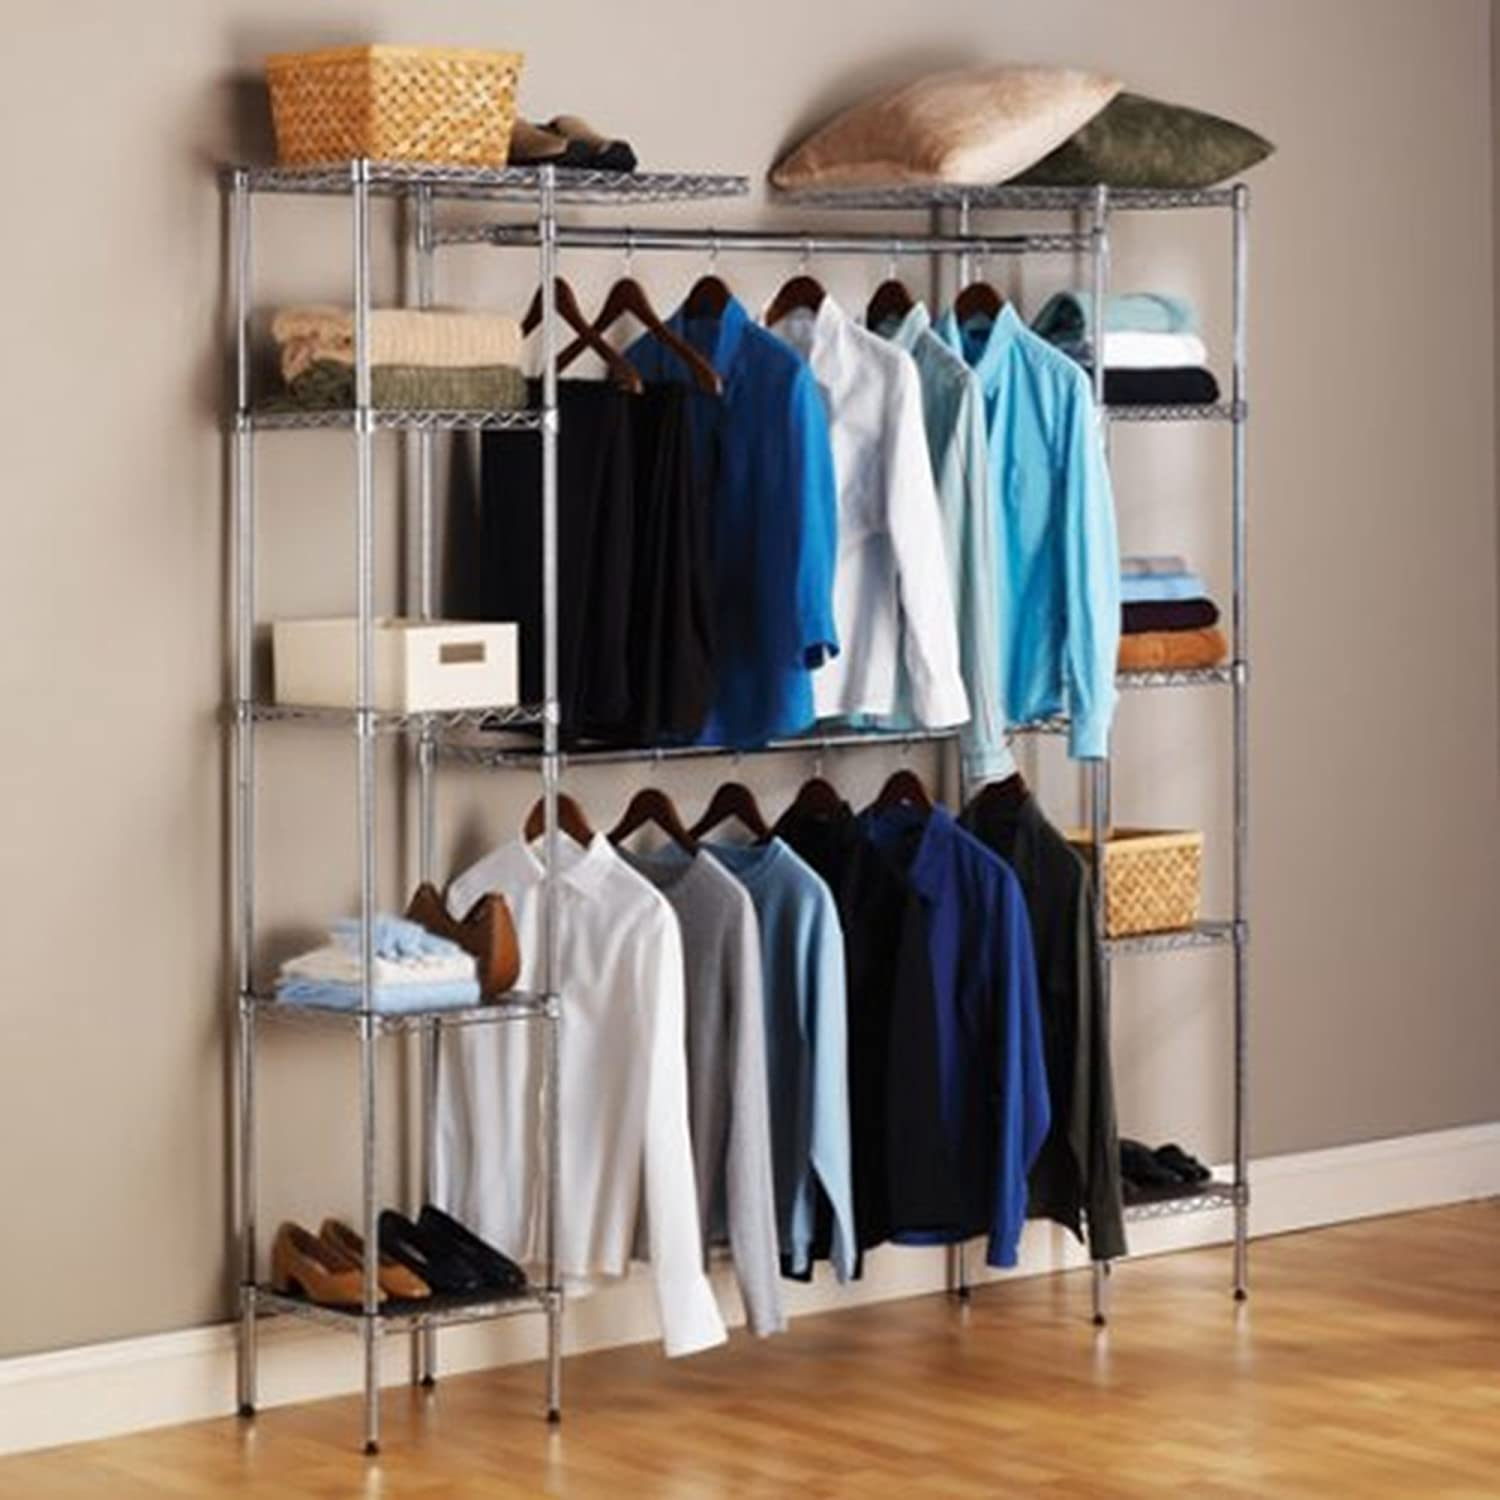 closet tags systems system concept full photos organization tag depot office closetanization collection of org wardrobe size inspiring home ideas for top